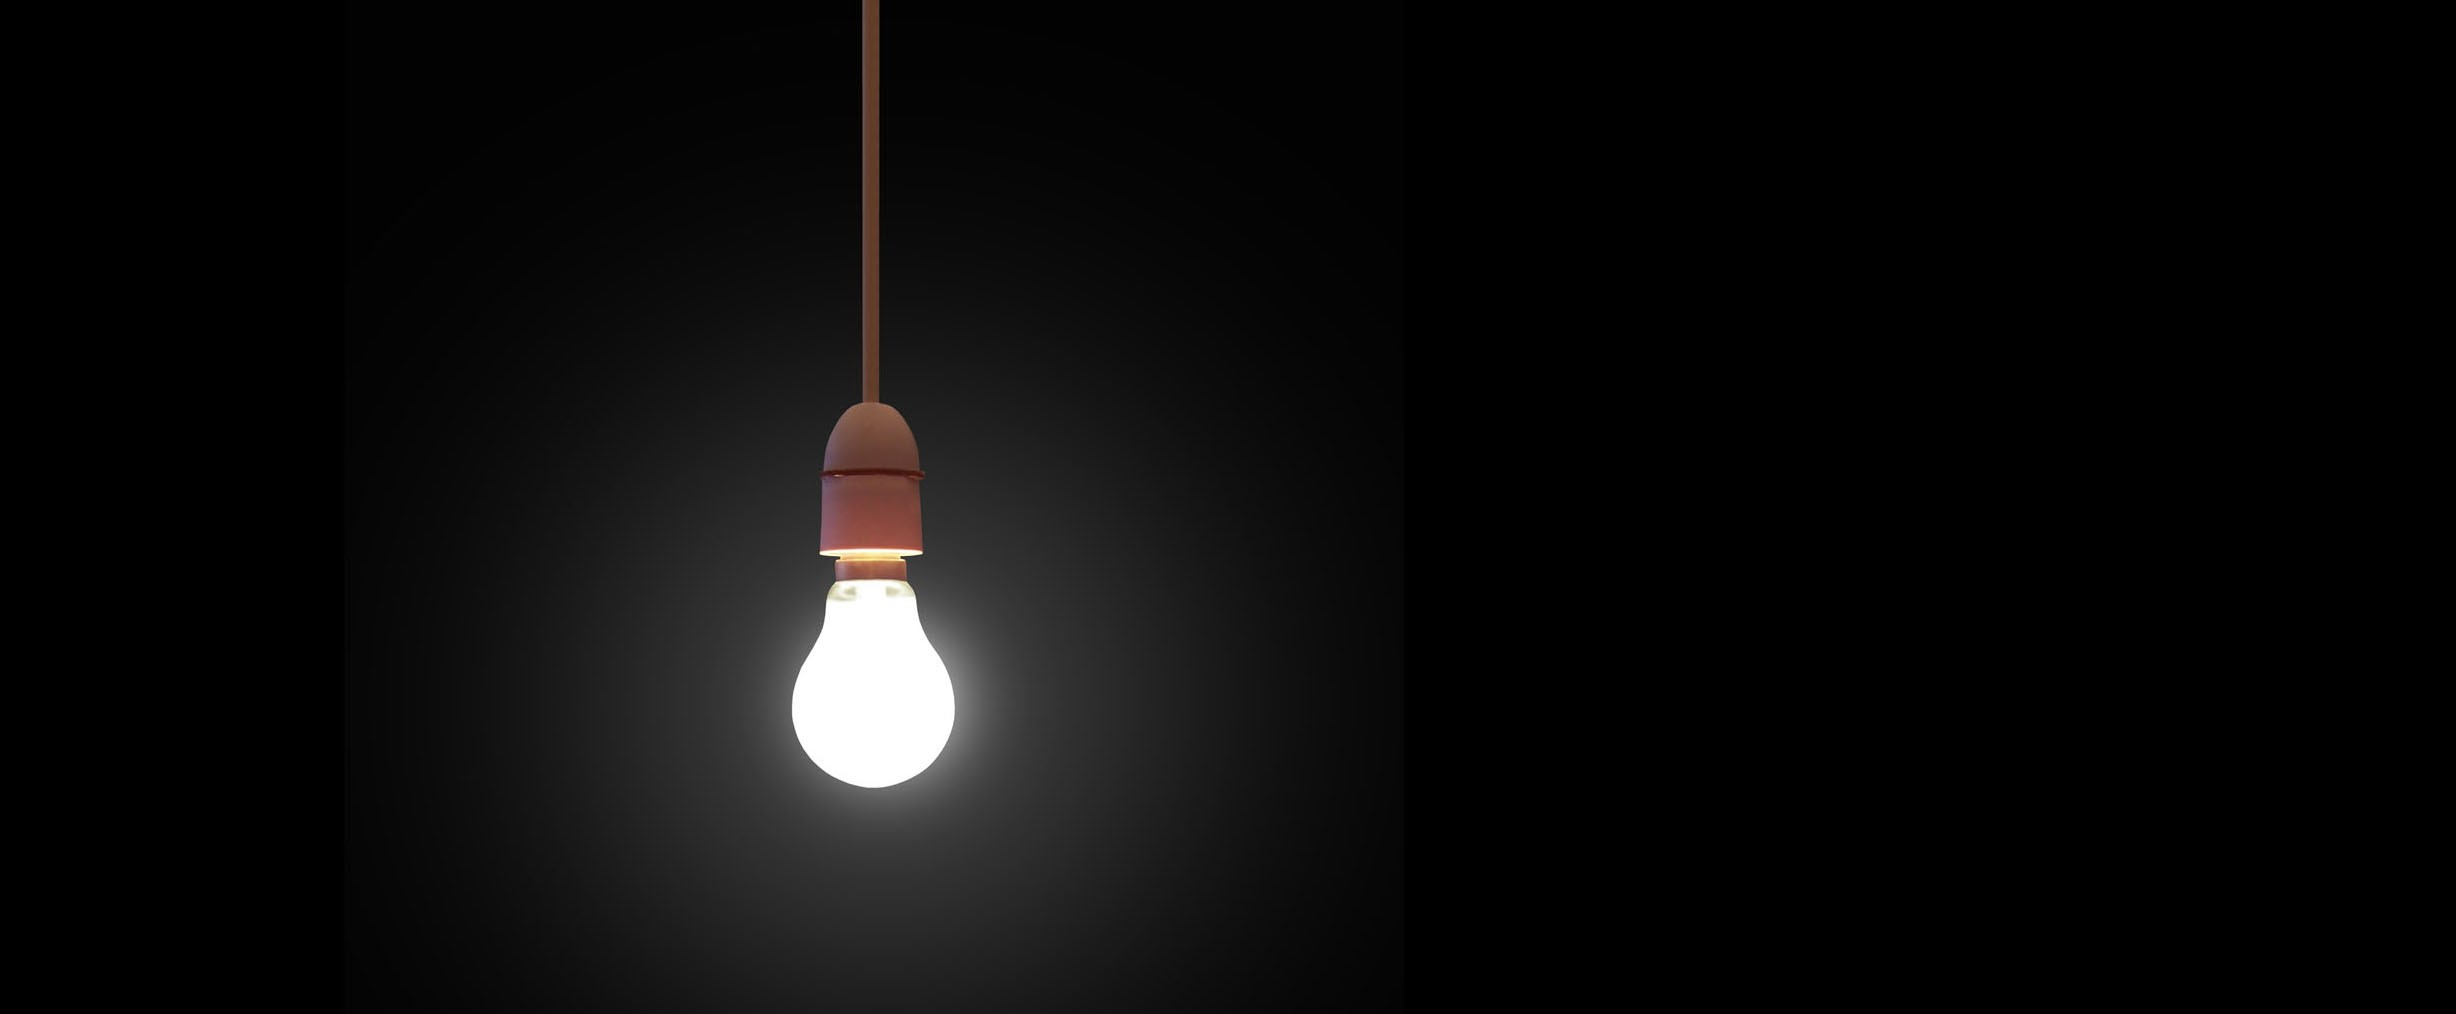 of Hanging Light Bulbs Wallpapers SC